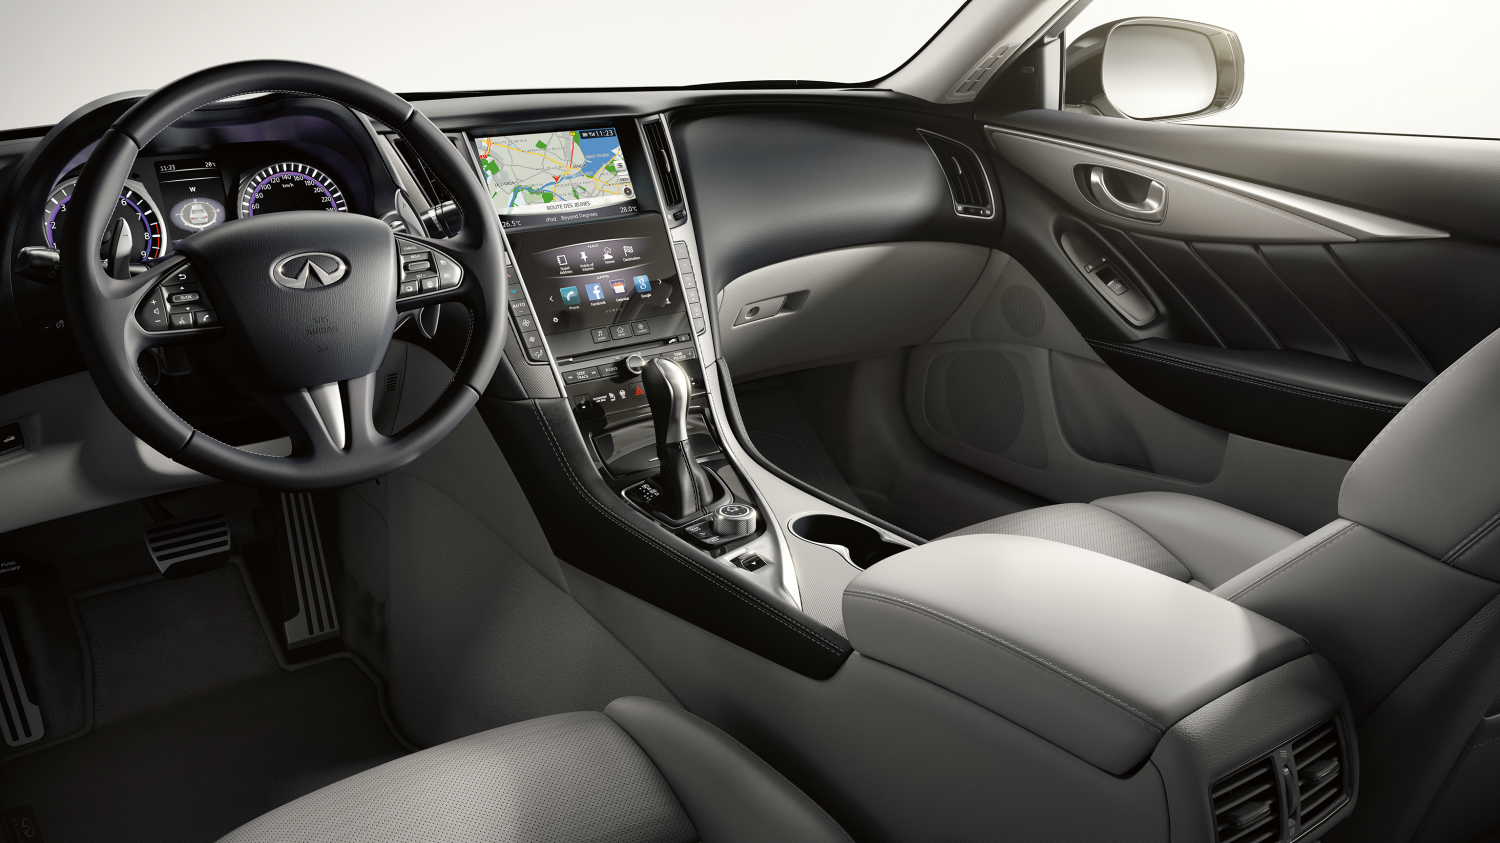 Bose Speakers For Cars >> INFINITI Q50 Features - Technology, Safety & Entertainment